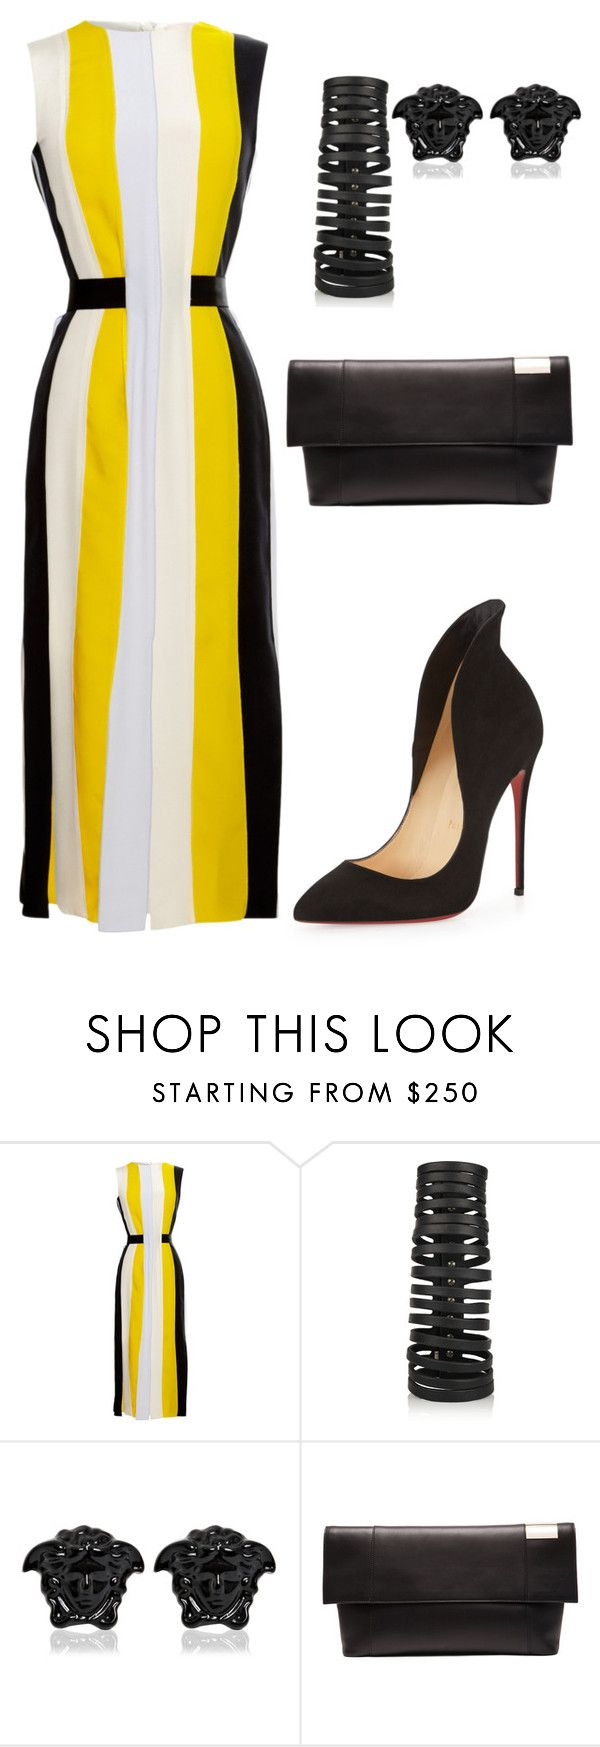 helia's style theory by heliaamado on Polyvore featuring Roksanda, Christian Louboutin, Victoria Beckham, Rick Owens and Versace